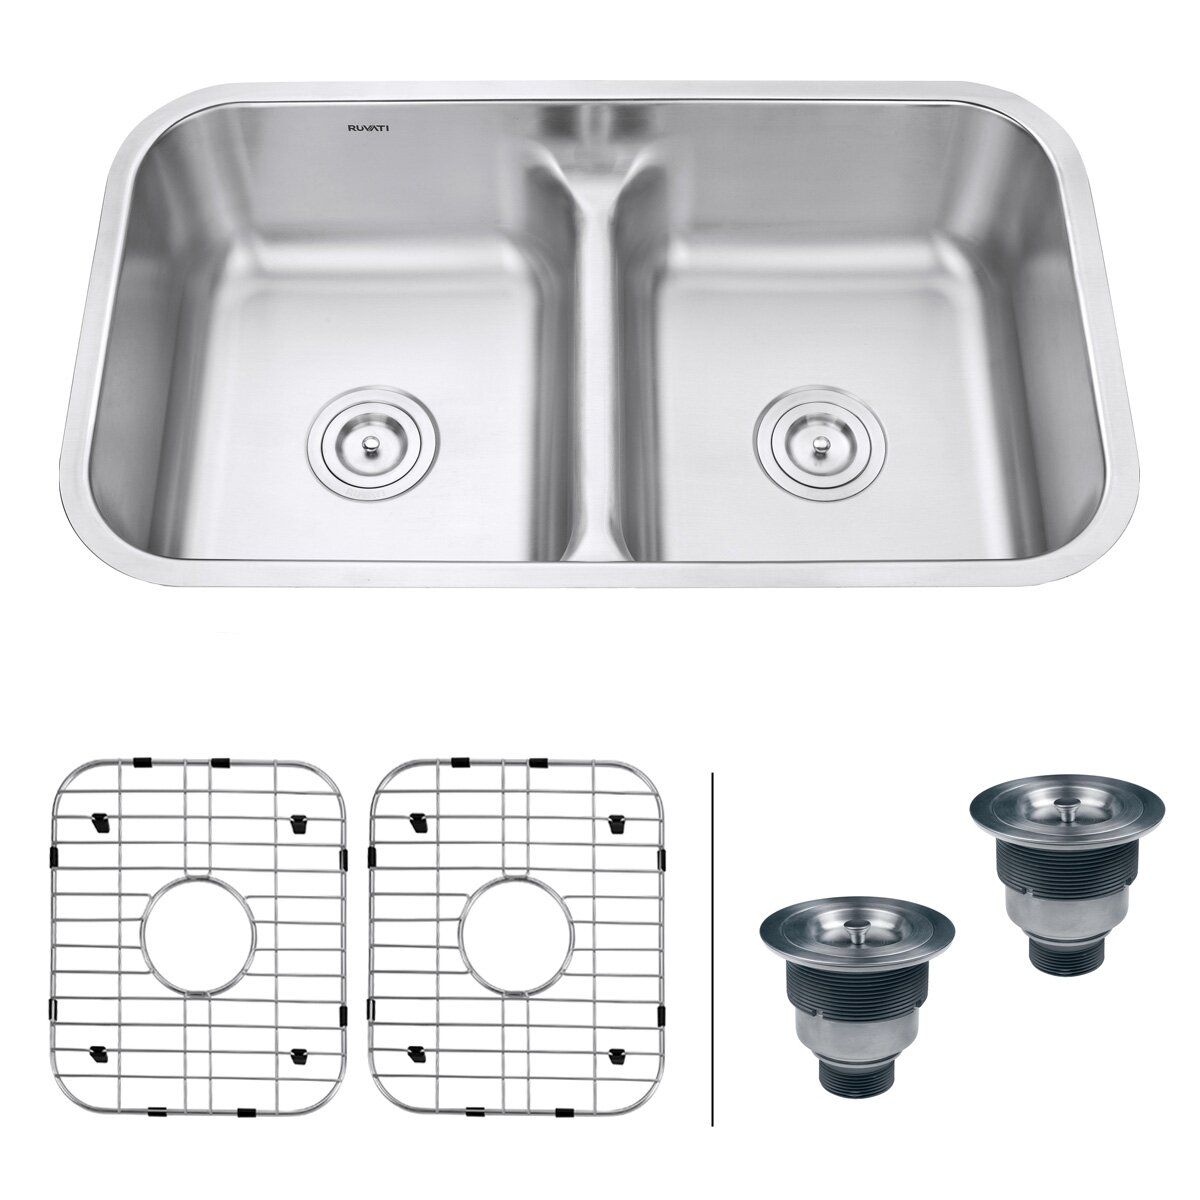 Stainless Steel Farmhouse Kitchen Sinks | Corner Stainless Steel Kitchen Sink | Kitchen Sinks Stainless Steel